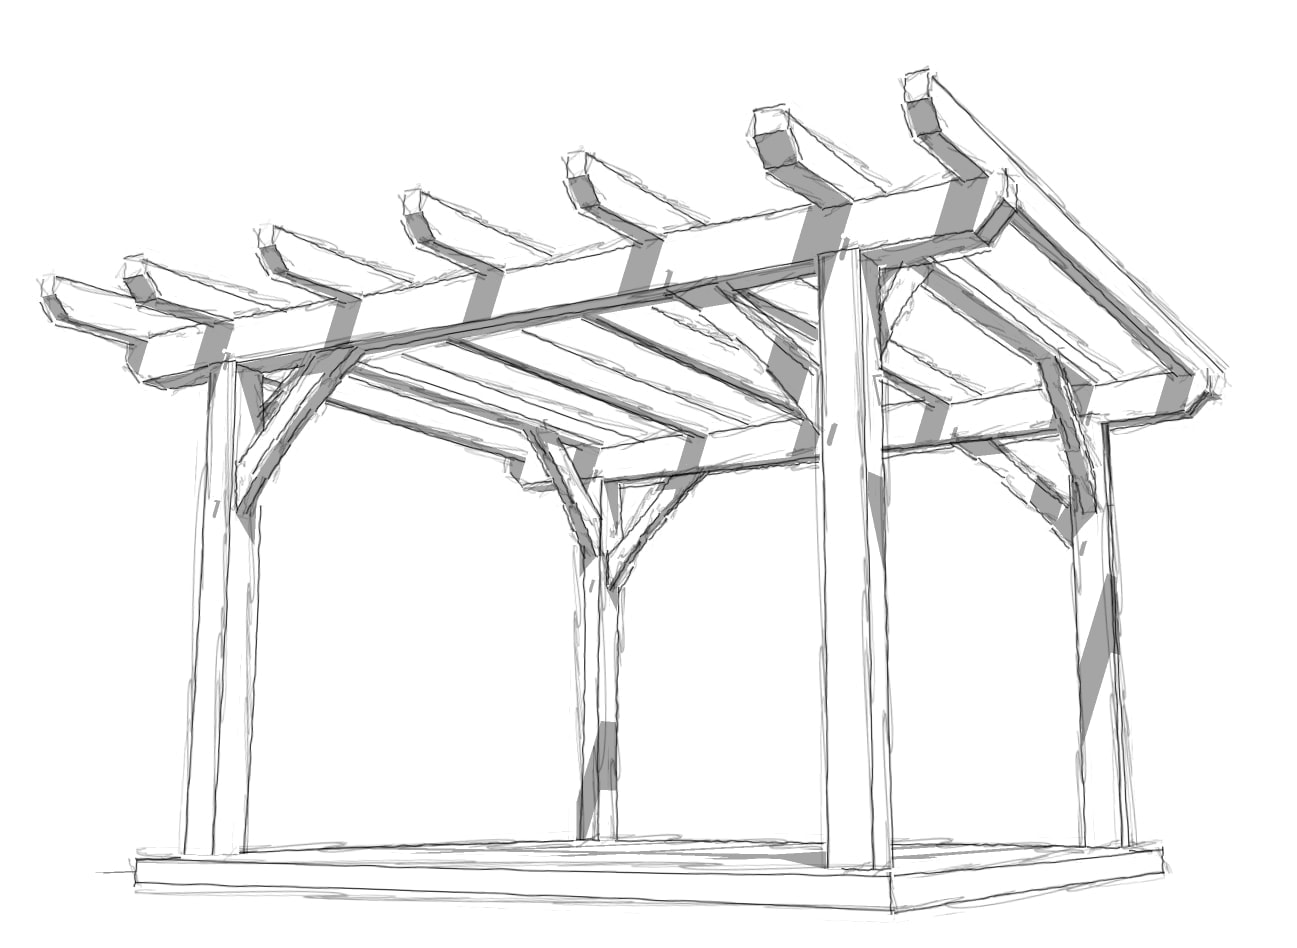 12x12 Timber Frame Pergola Plan - Timber Frame HQ